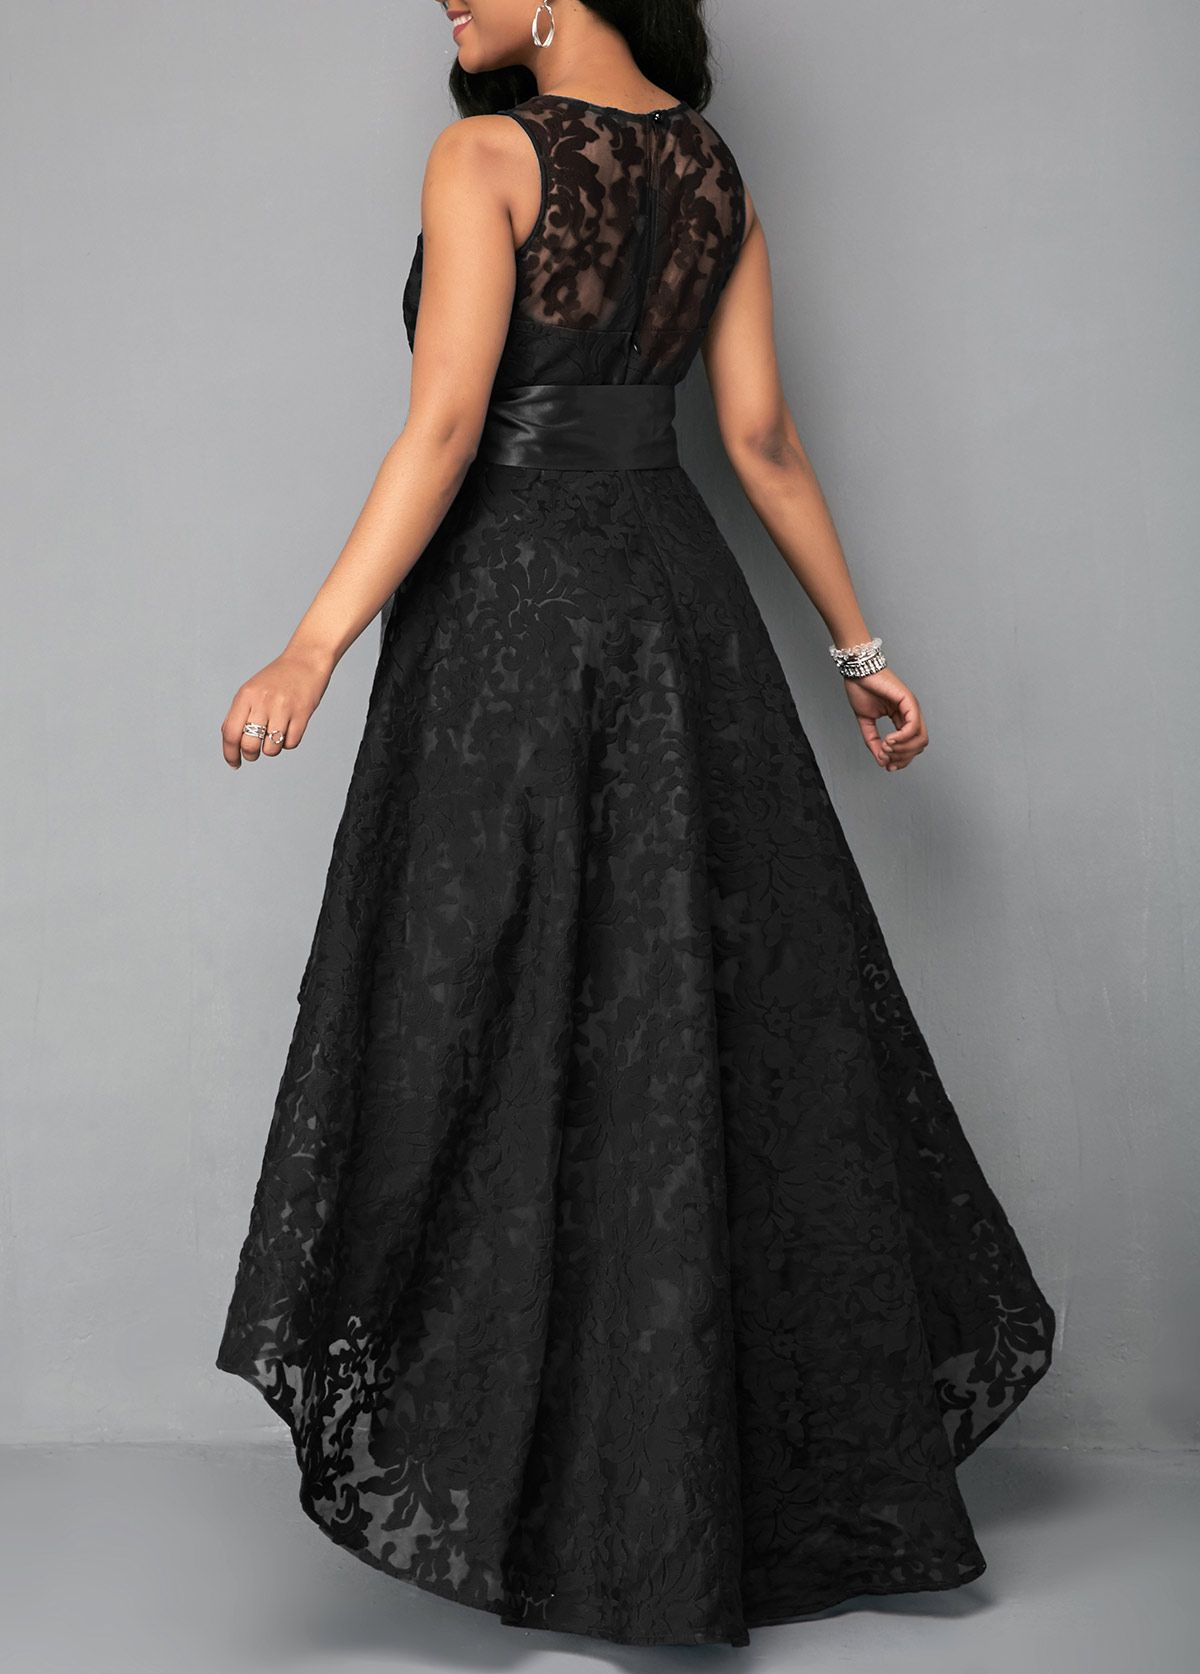 Sleeveless high low black belted lace dress party dresses